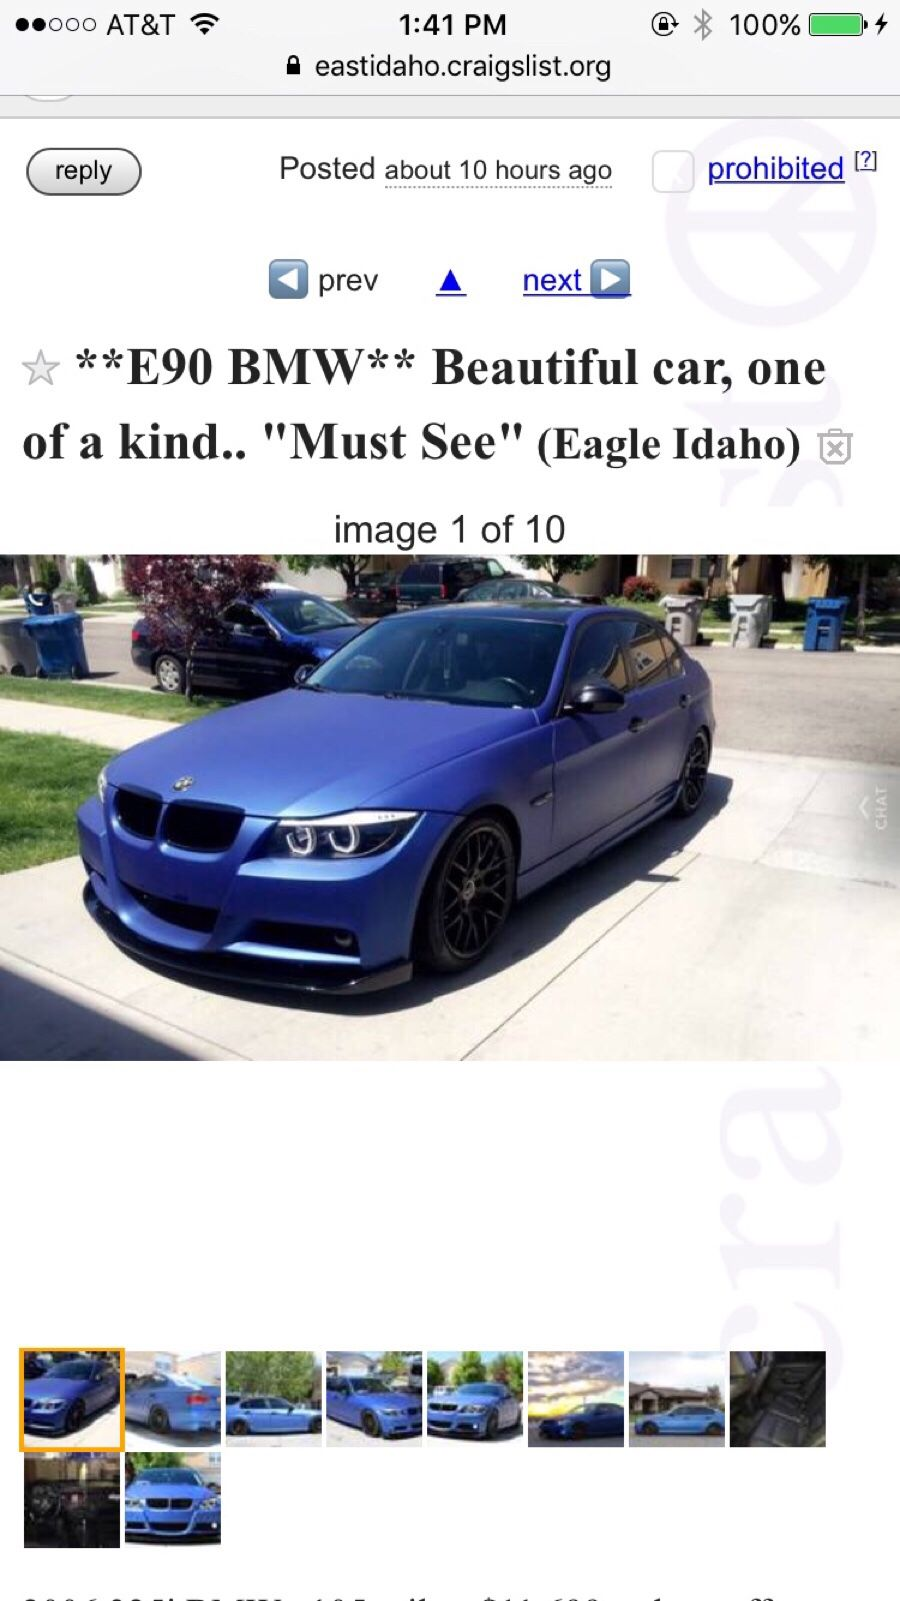 Gggghh Ggfggh S 2006 Bmw 3 Series On Wheelwell All info is in this craigslist ad except i forgot to add that it has a new battery as well. 2006 bmw 3 series on wheelwell